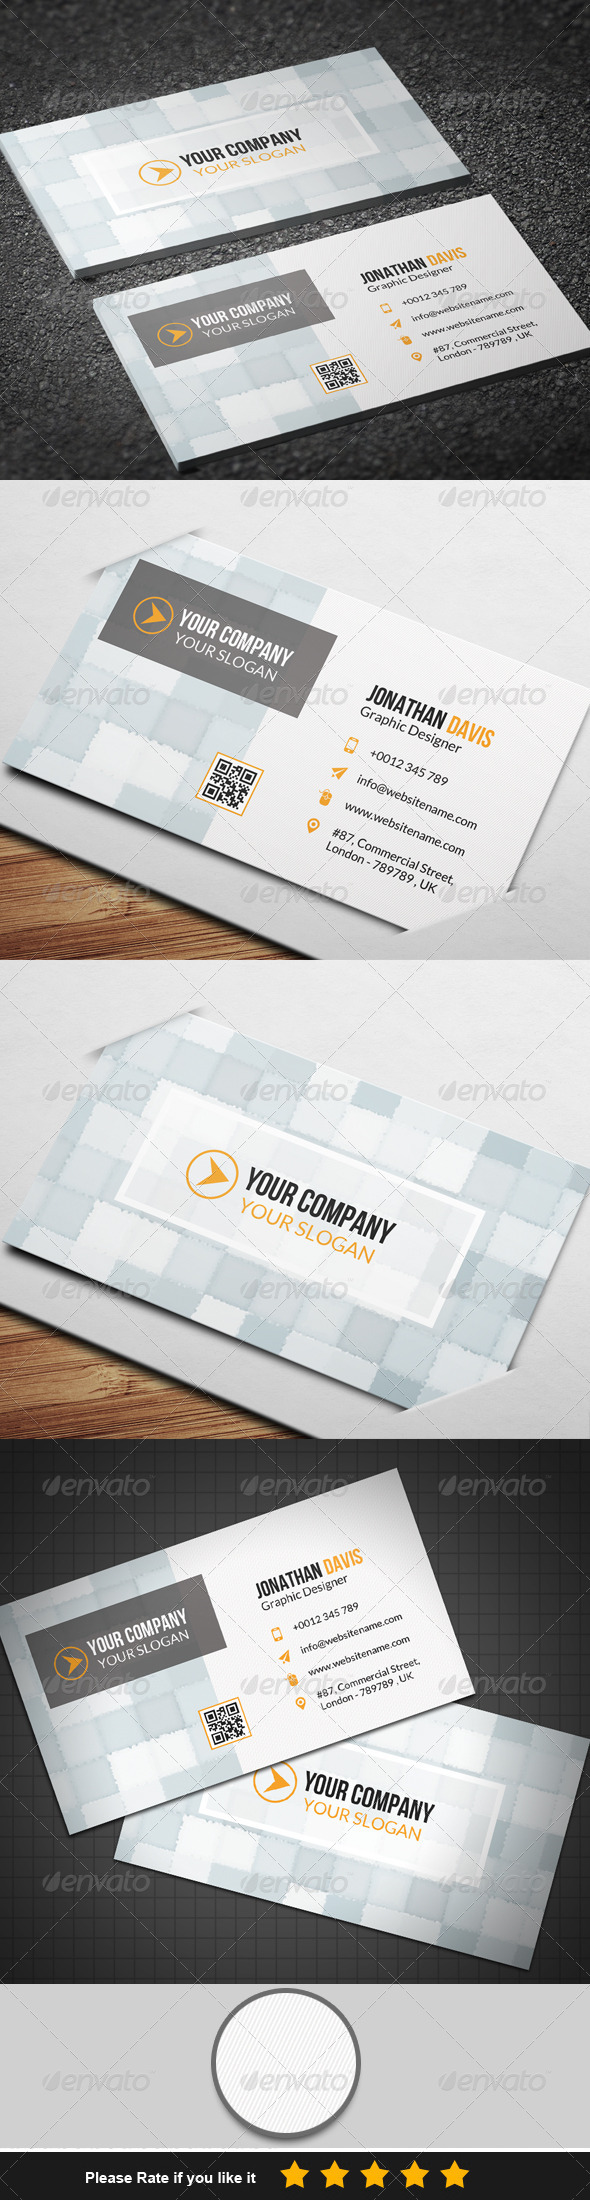 GraphicRiver Corporate Business Card 8 7820468